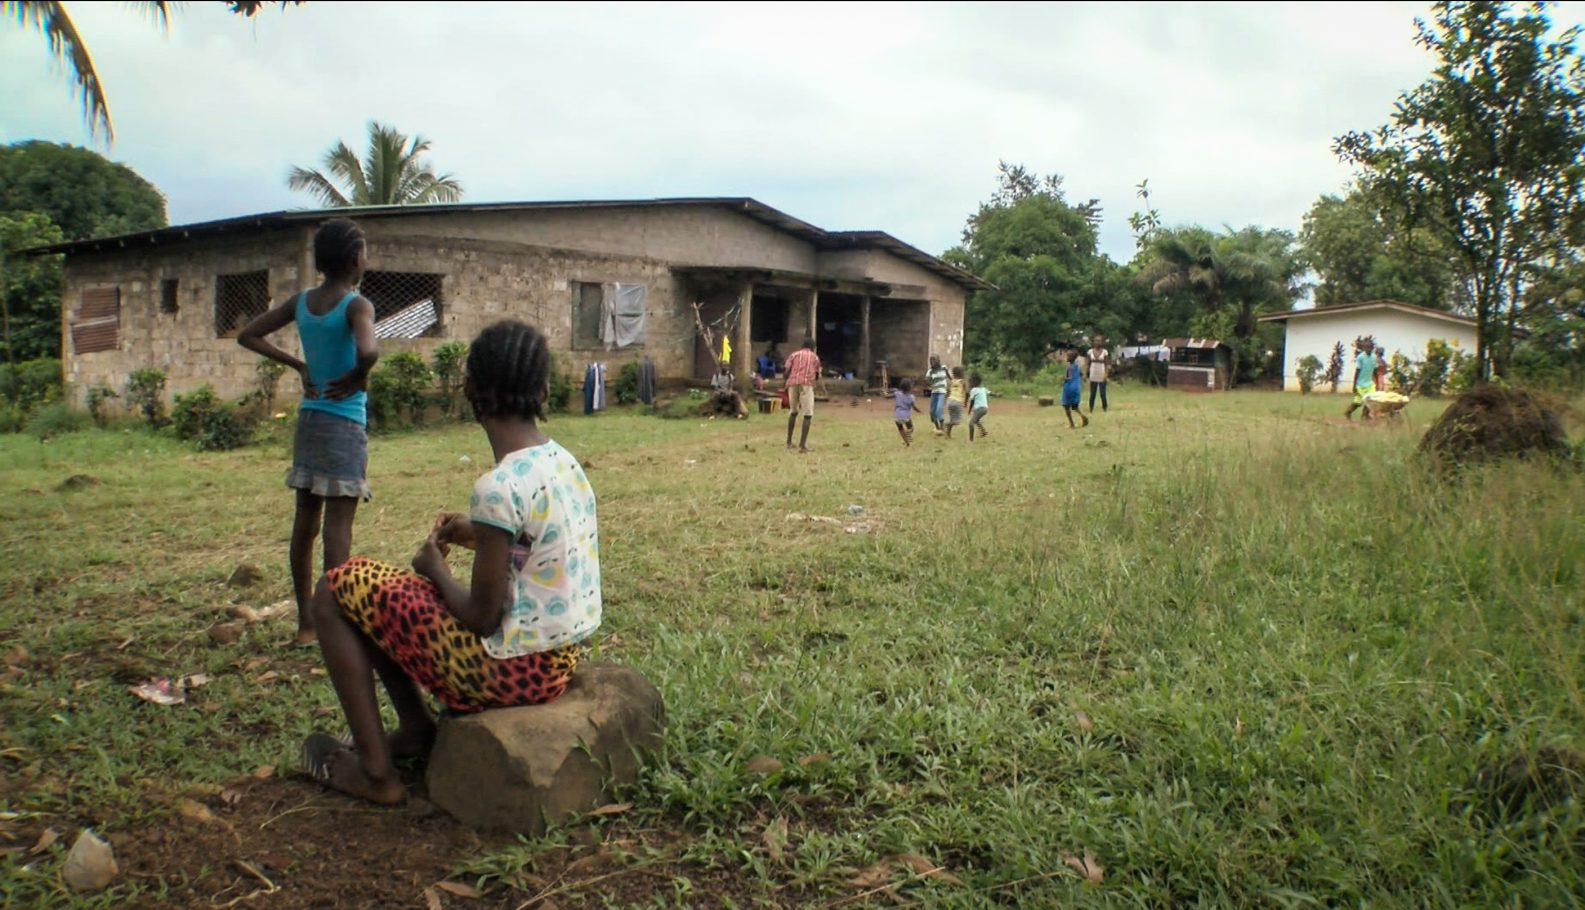 Ebola orphans cannot play with the kids of their community